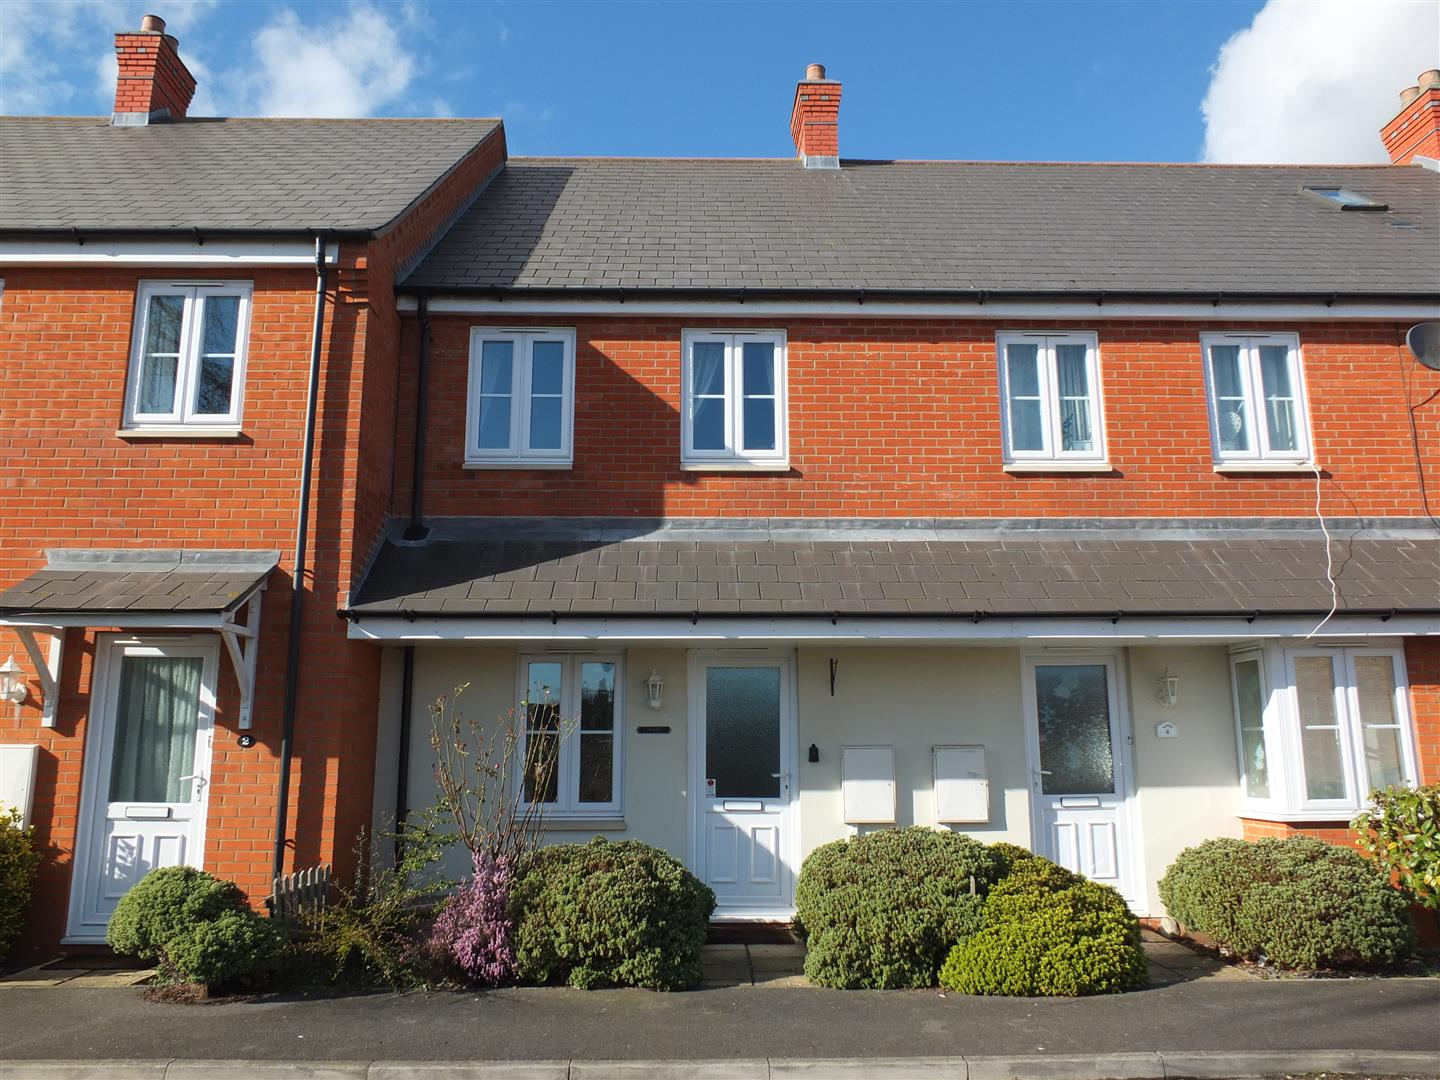 2 bed terraced house to rent in Long Sutton Spalding, PE12 9BF  - Property Image 1